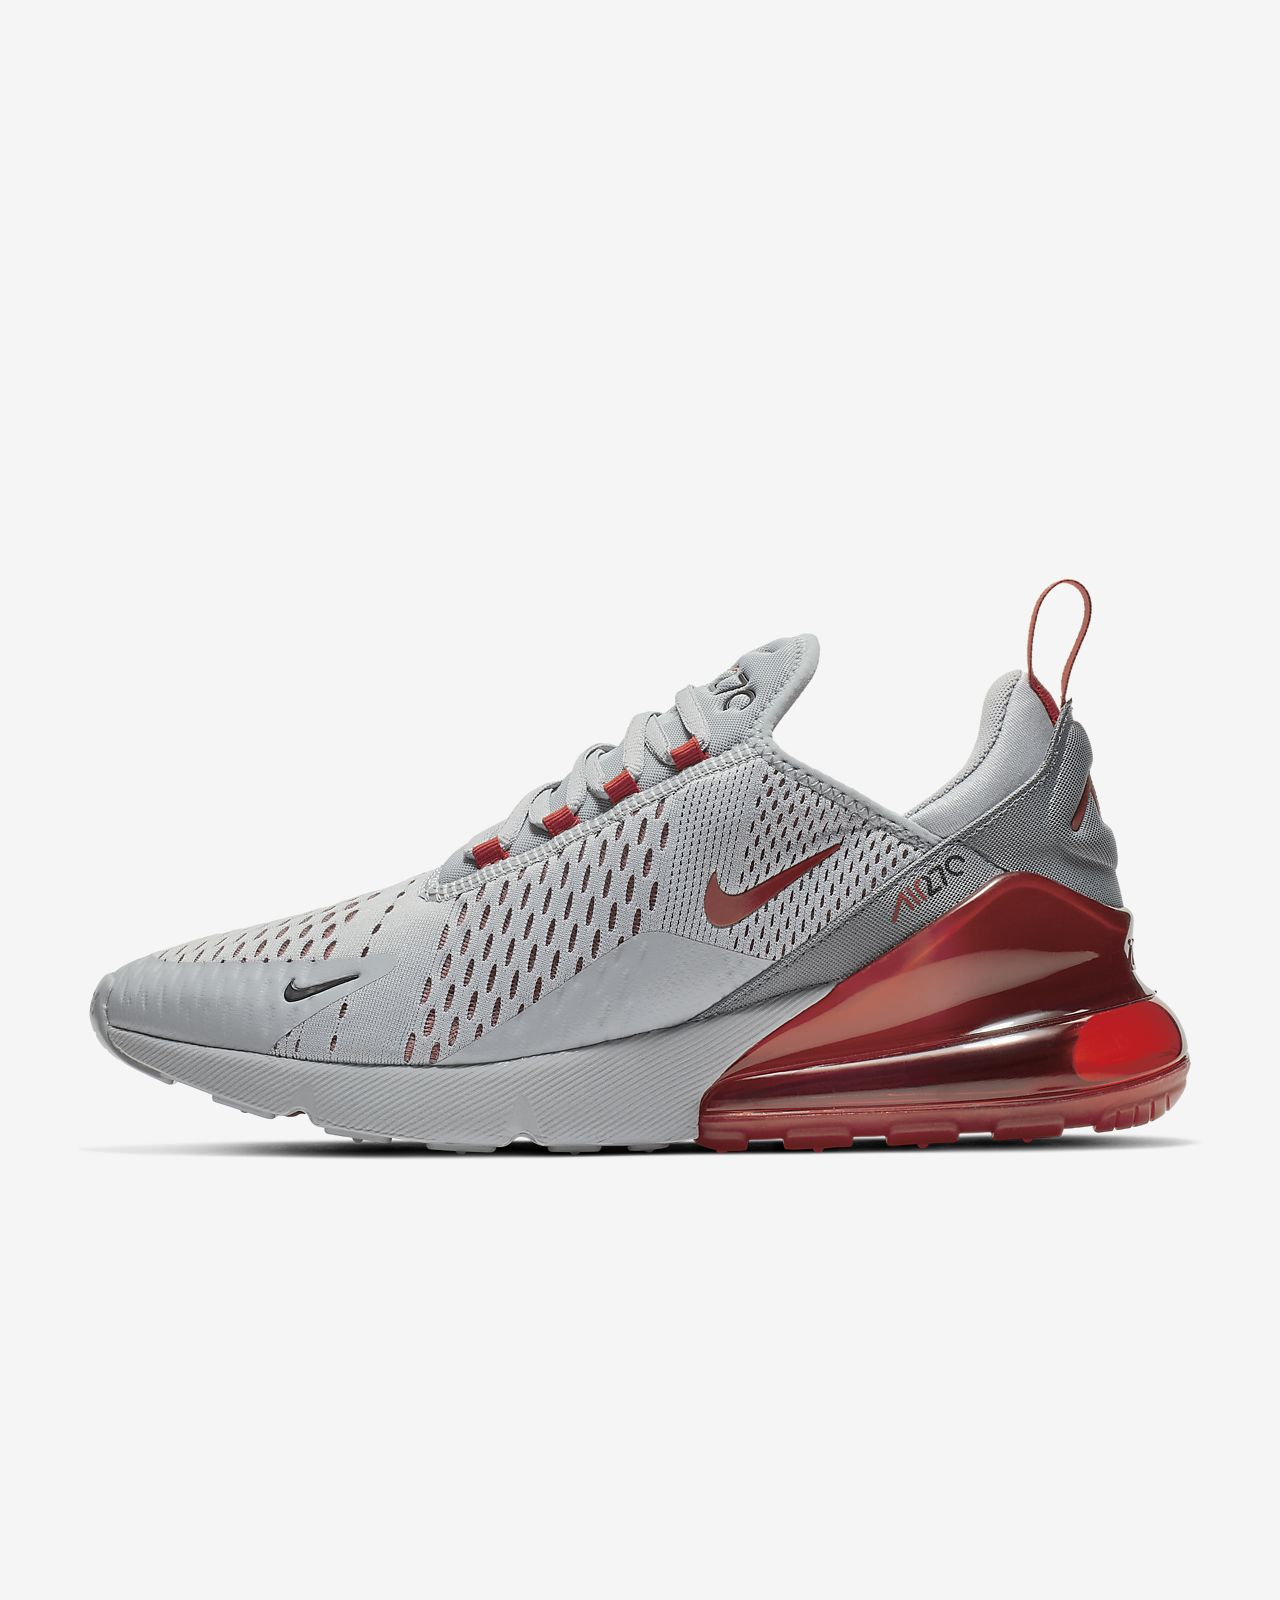 meet 7dc90 311aa Men s Shoe. Nike Air Max 270